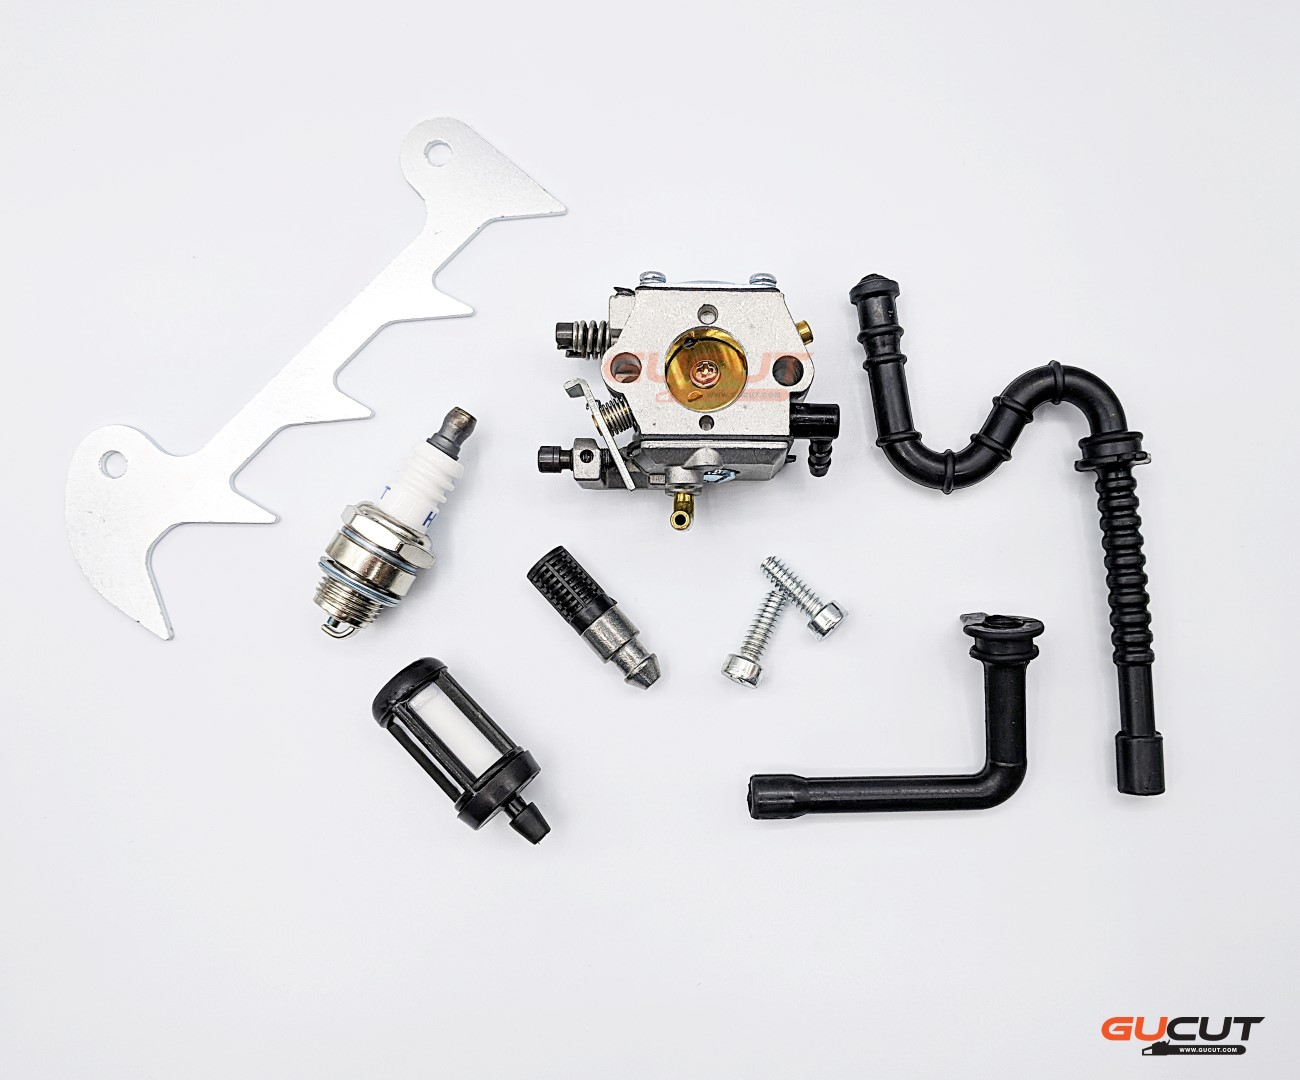 Chainsaw parts for STIHL MS260 026 MS 260 024 MS240 Carburetor Carb Fuel Line Filter High Quality